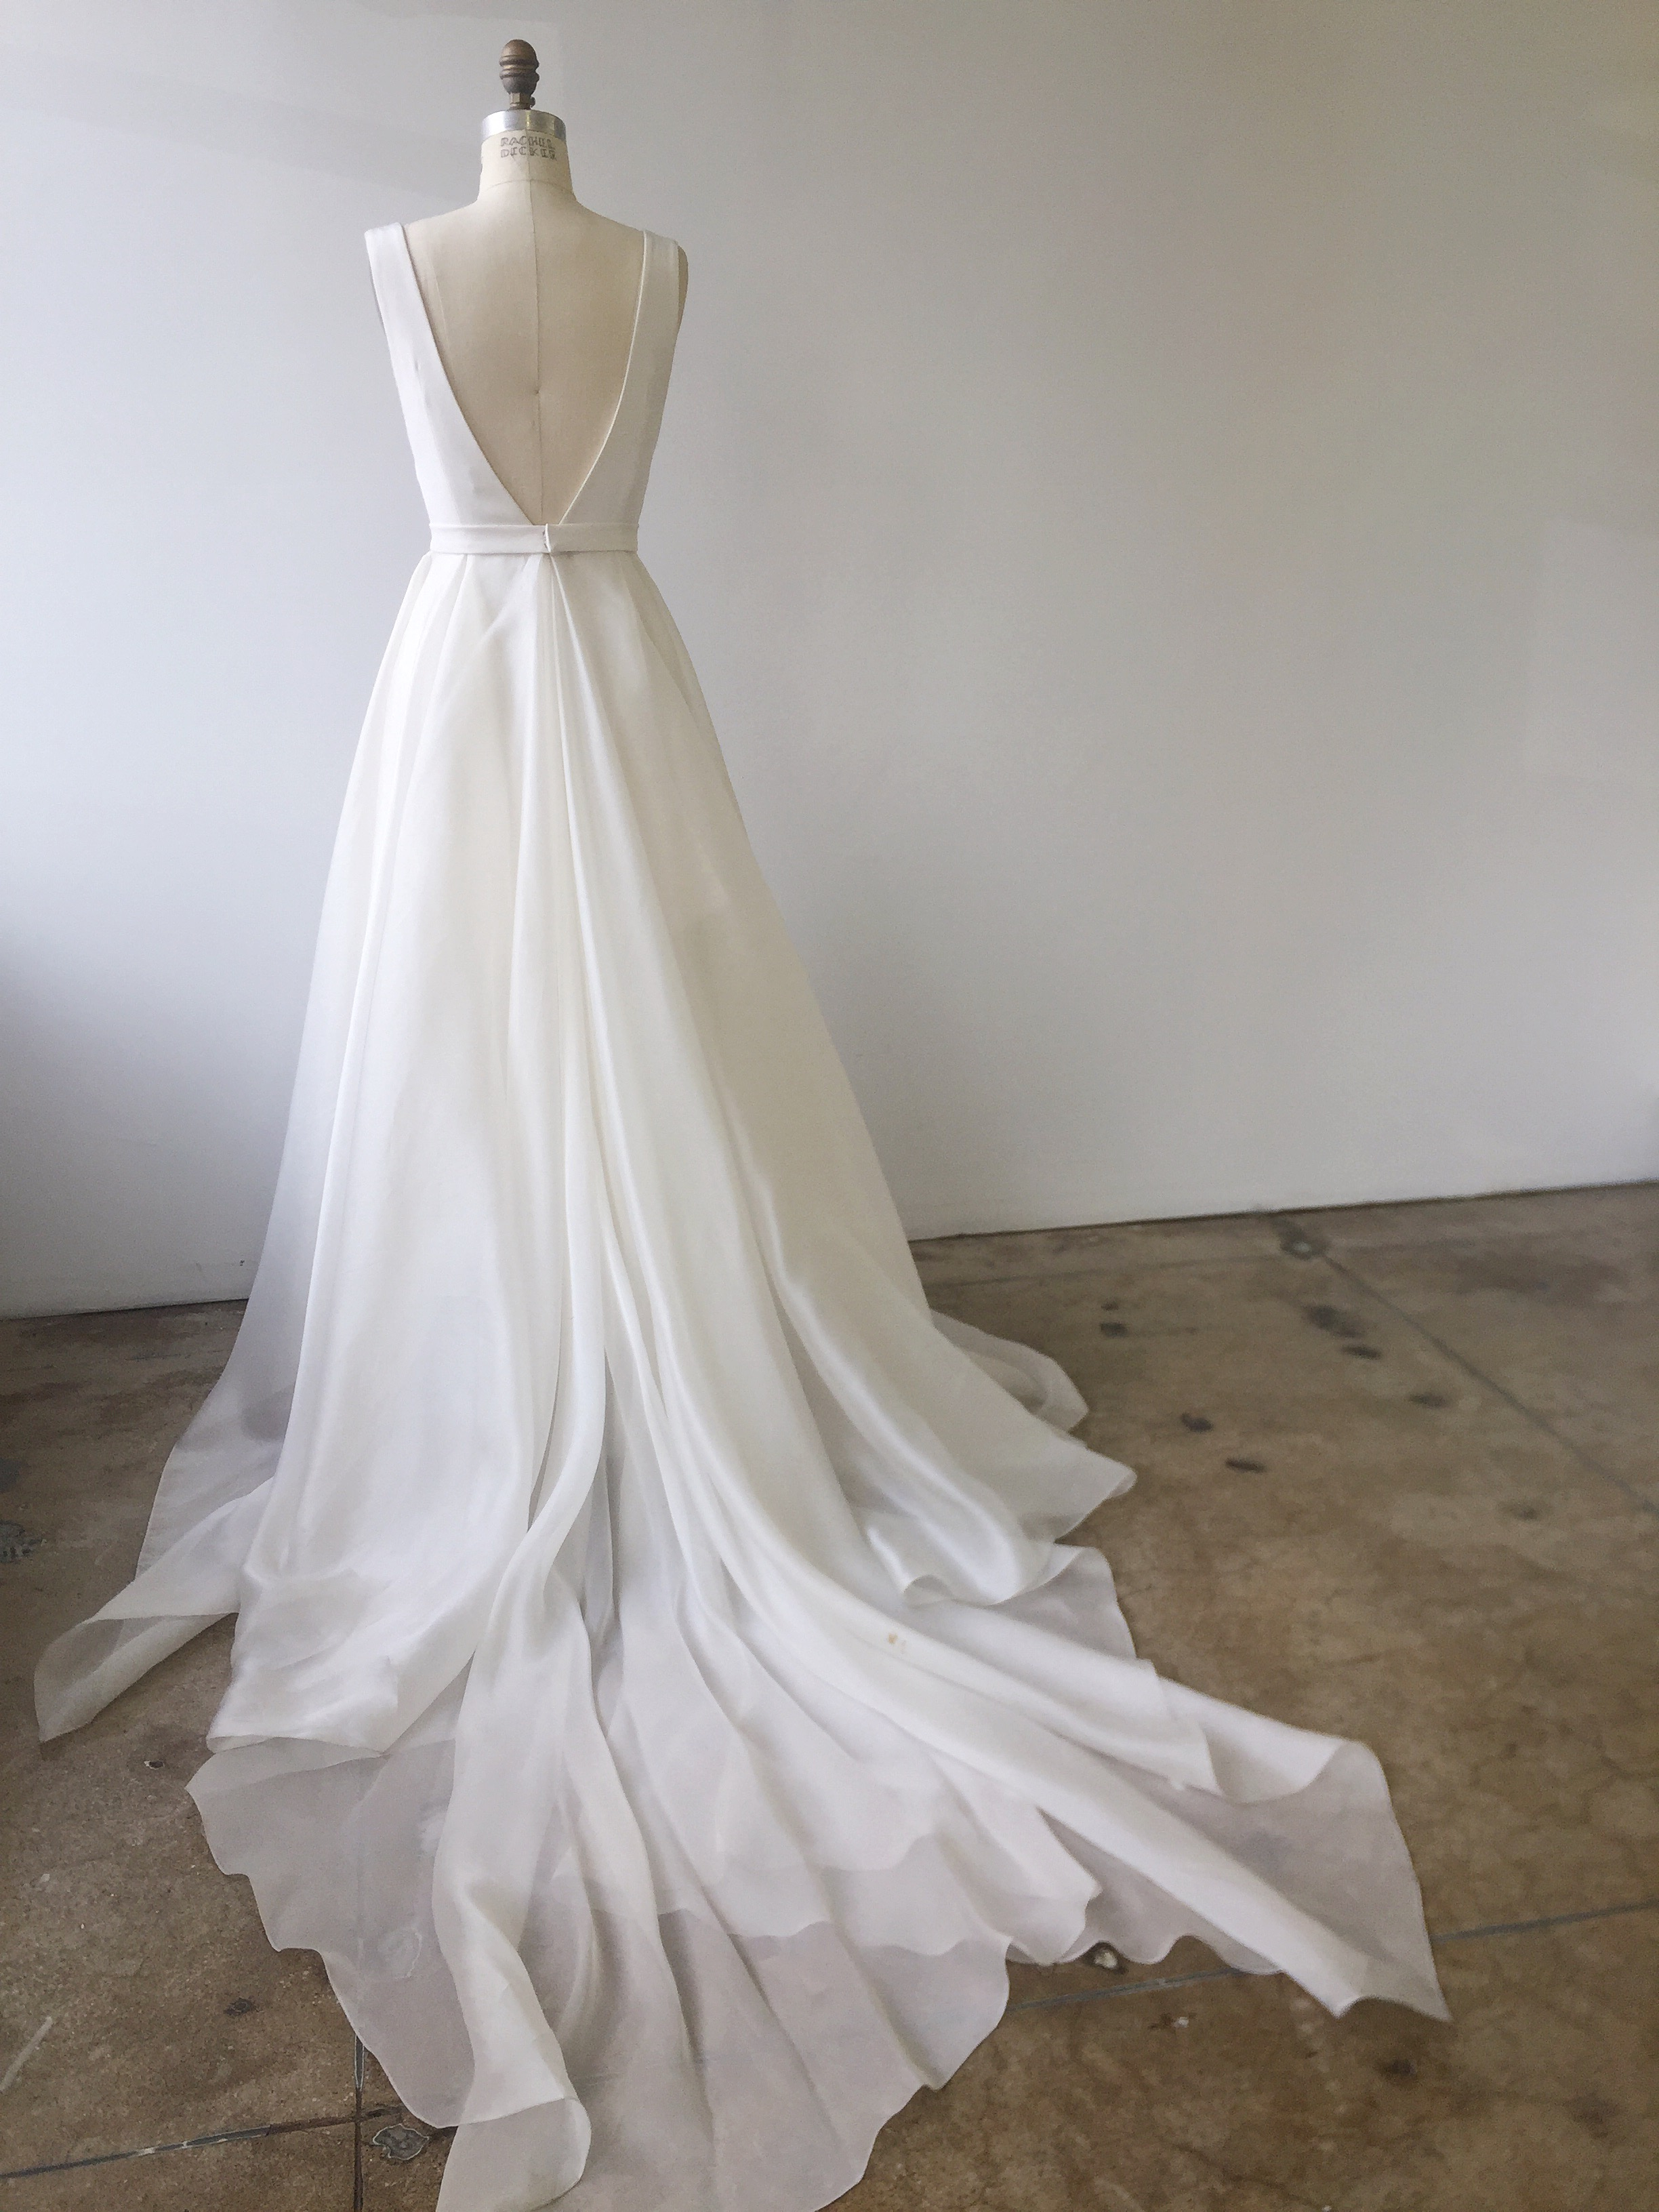 Azurite satin faced organza crepe 4.jpeg